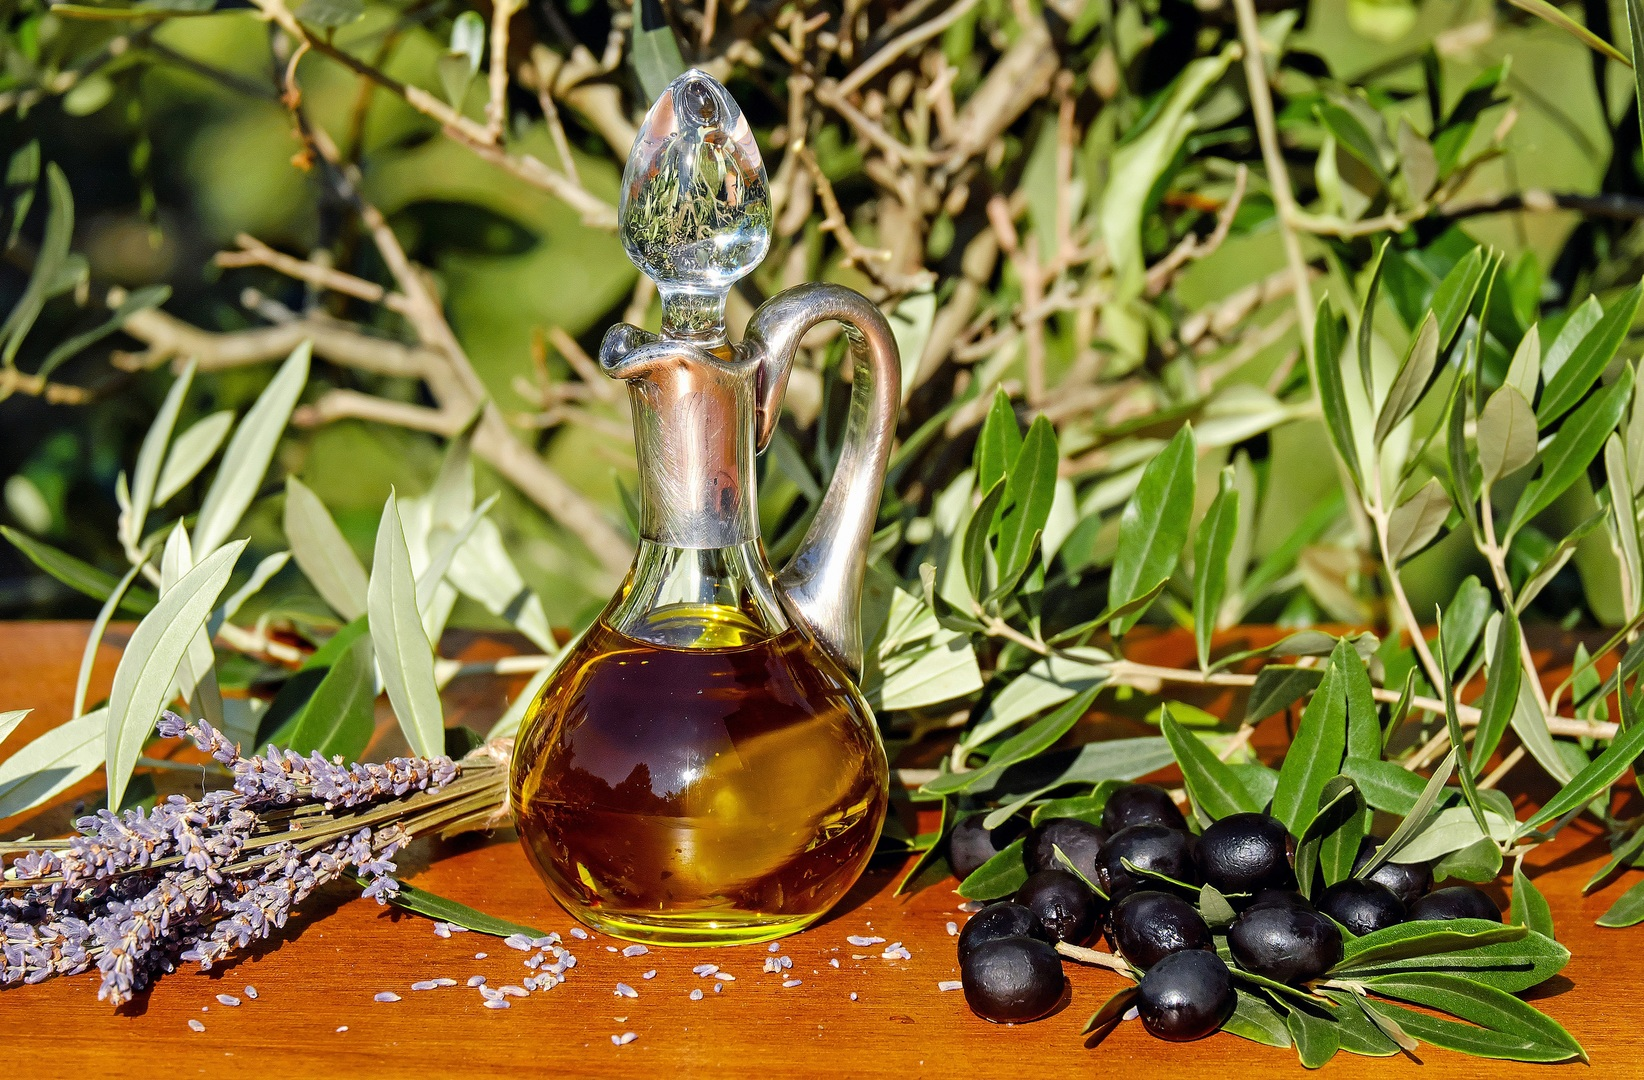 Pichet d'huile d'olive l'excellence Made in France